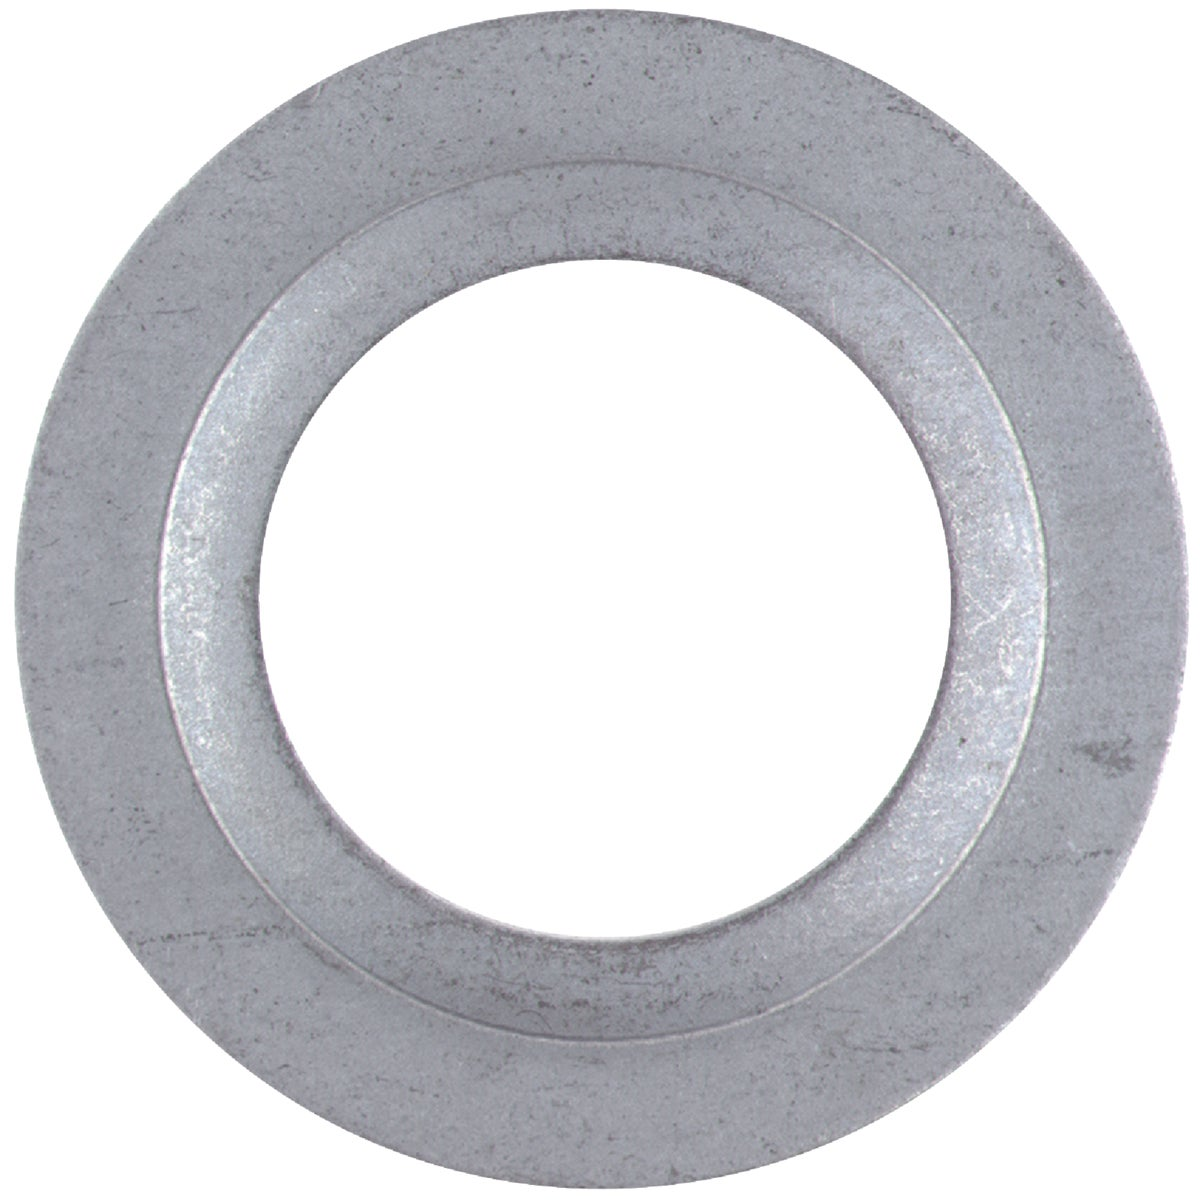 1X3/4 REDUCE WASHER